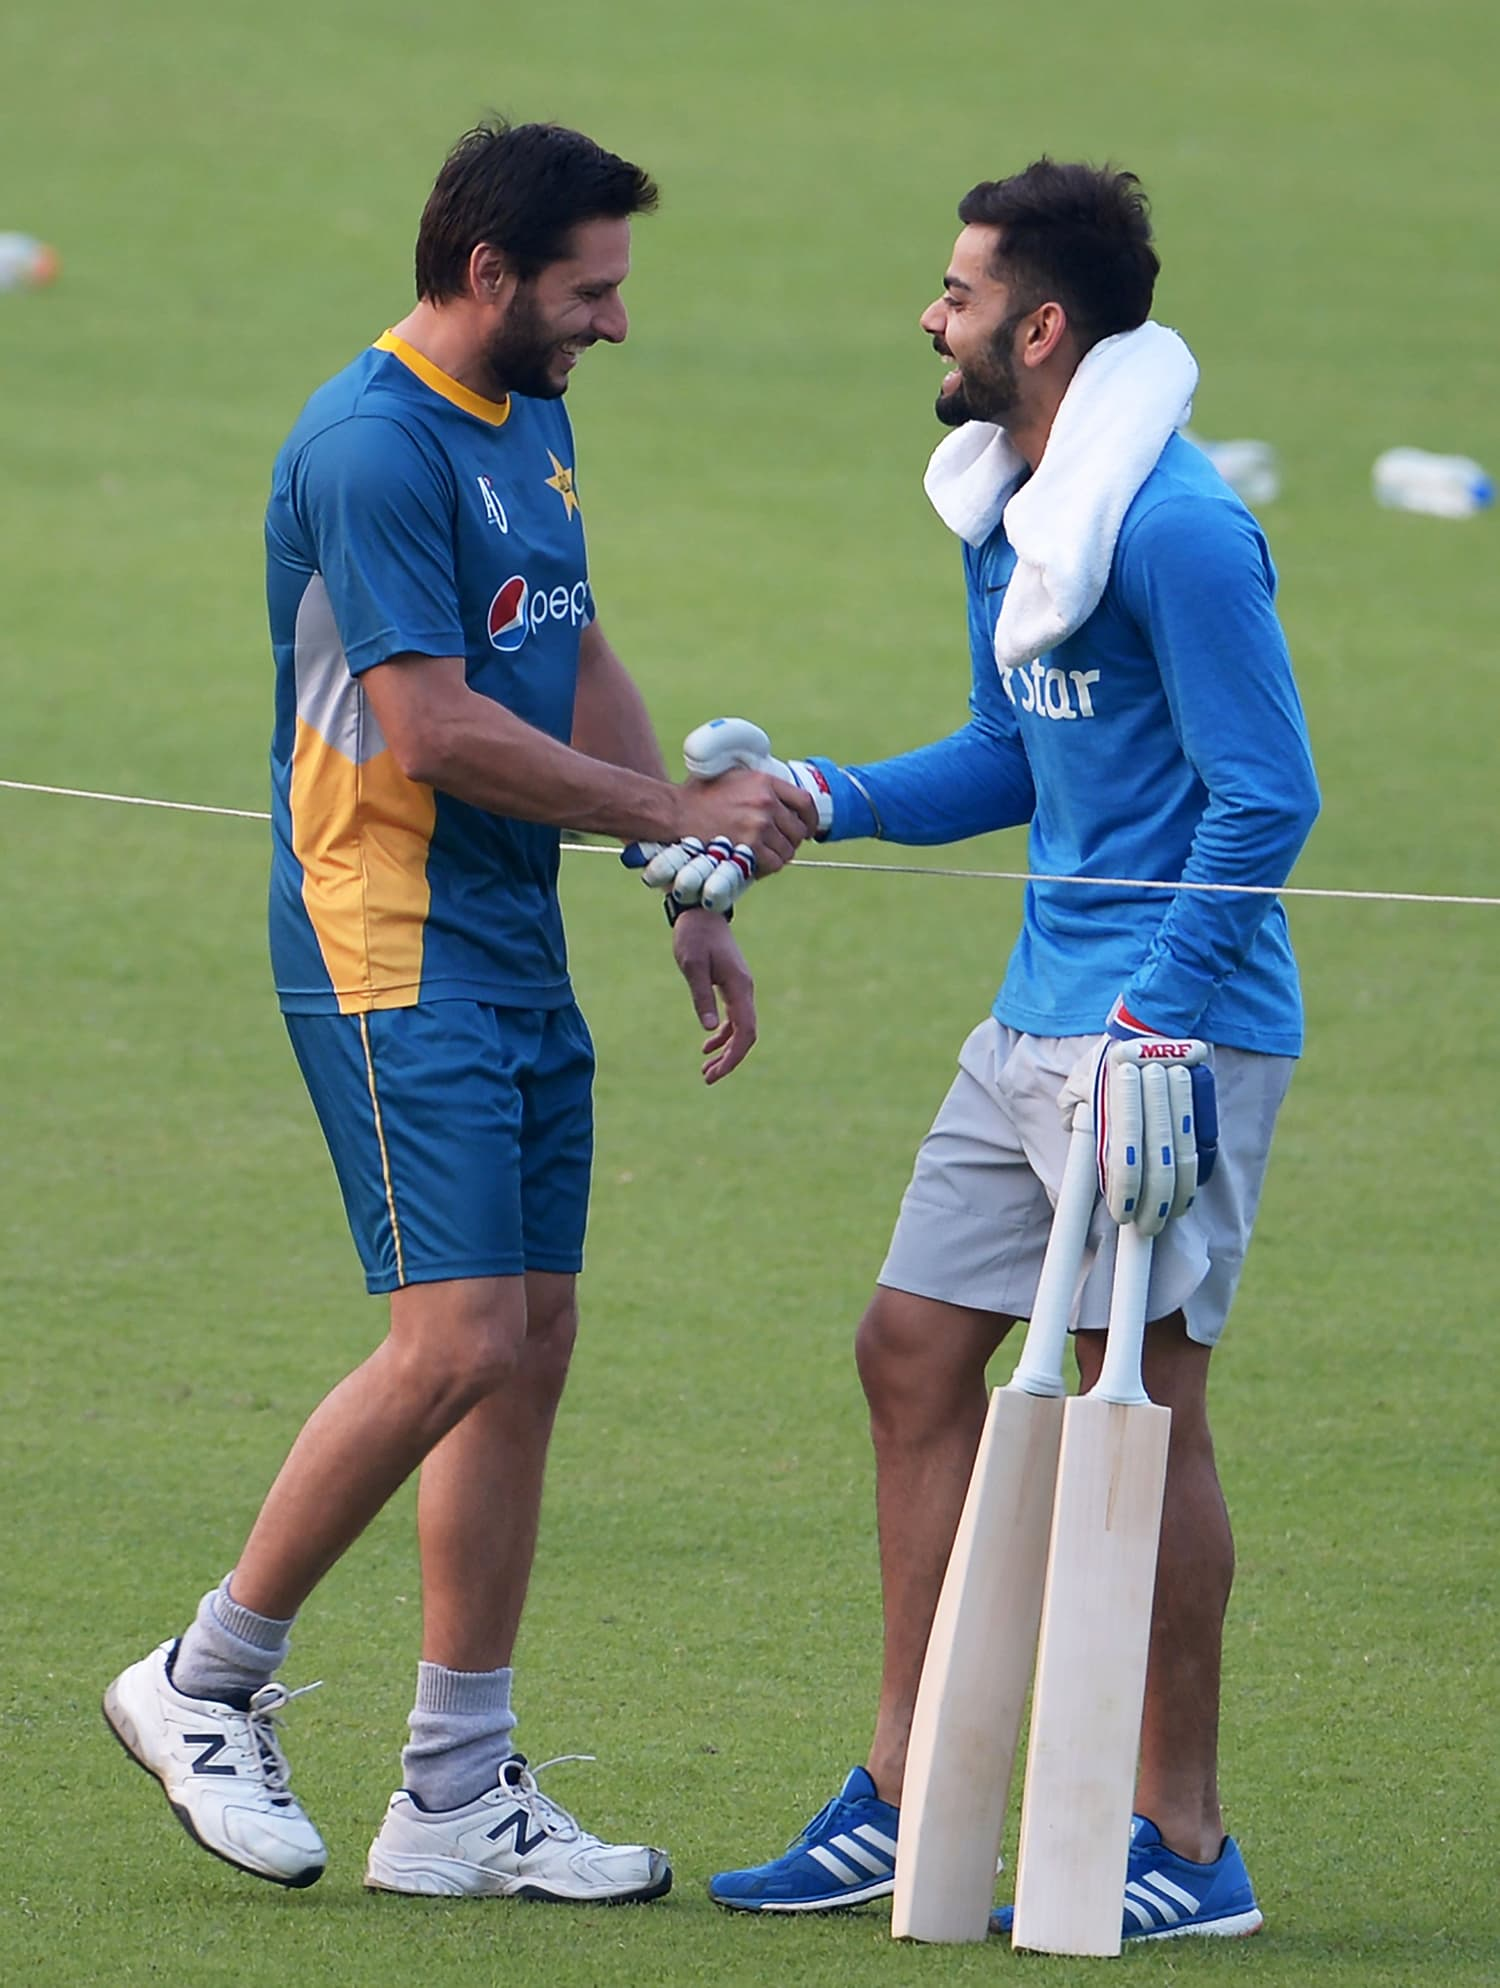 Kohli shakes hands with Afridi during a training session in Kolkata. — AFP